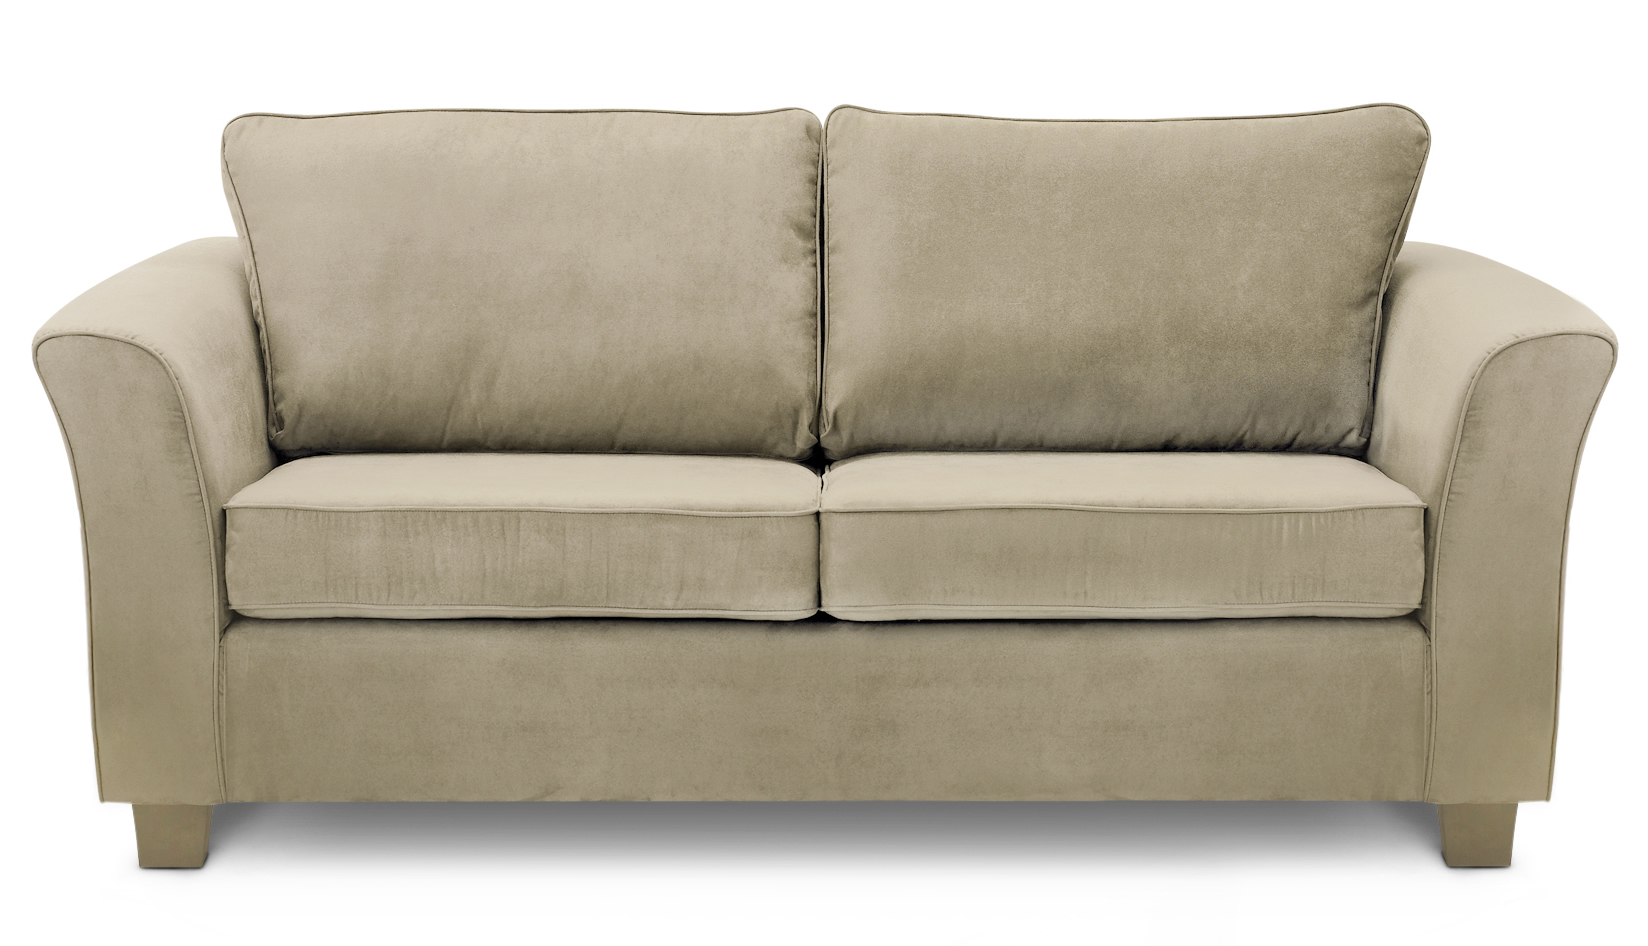 Sofas on sale ikea couch sofa ideas interior design for Cheap nice couches for sale